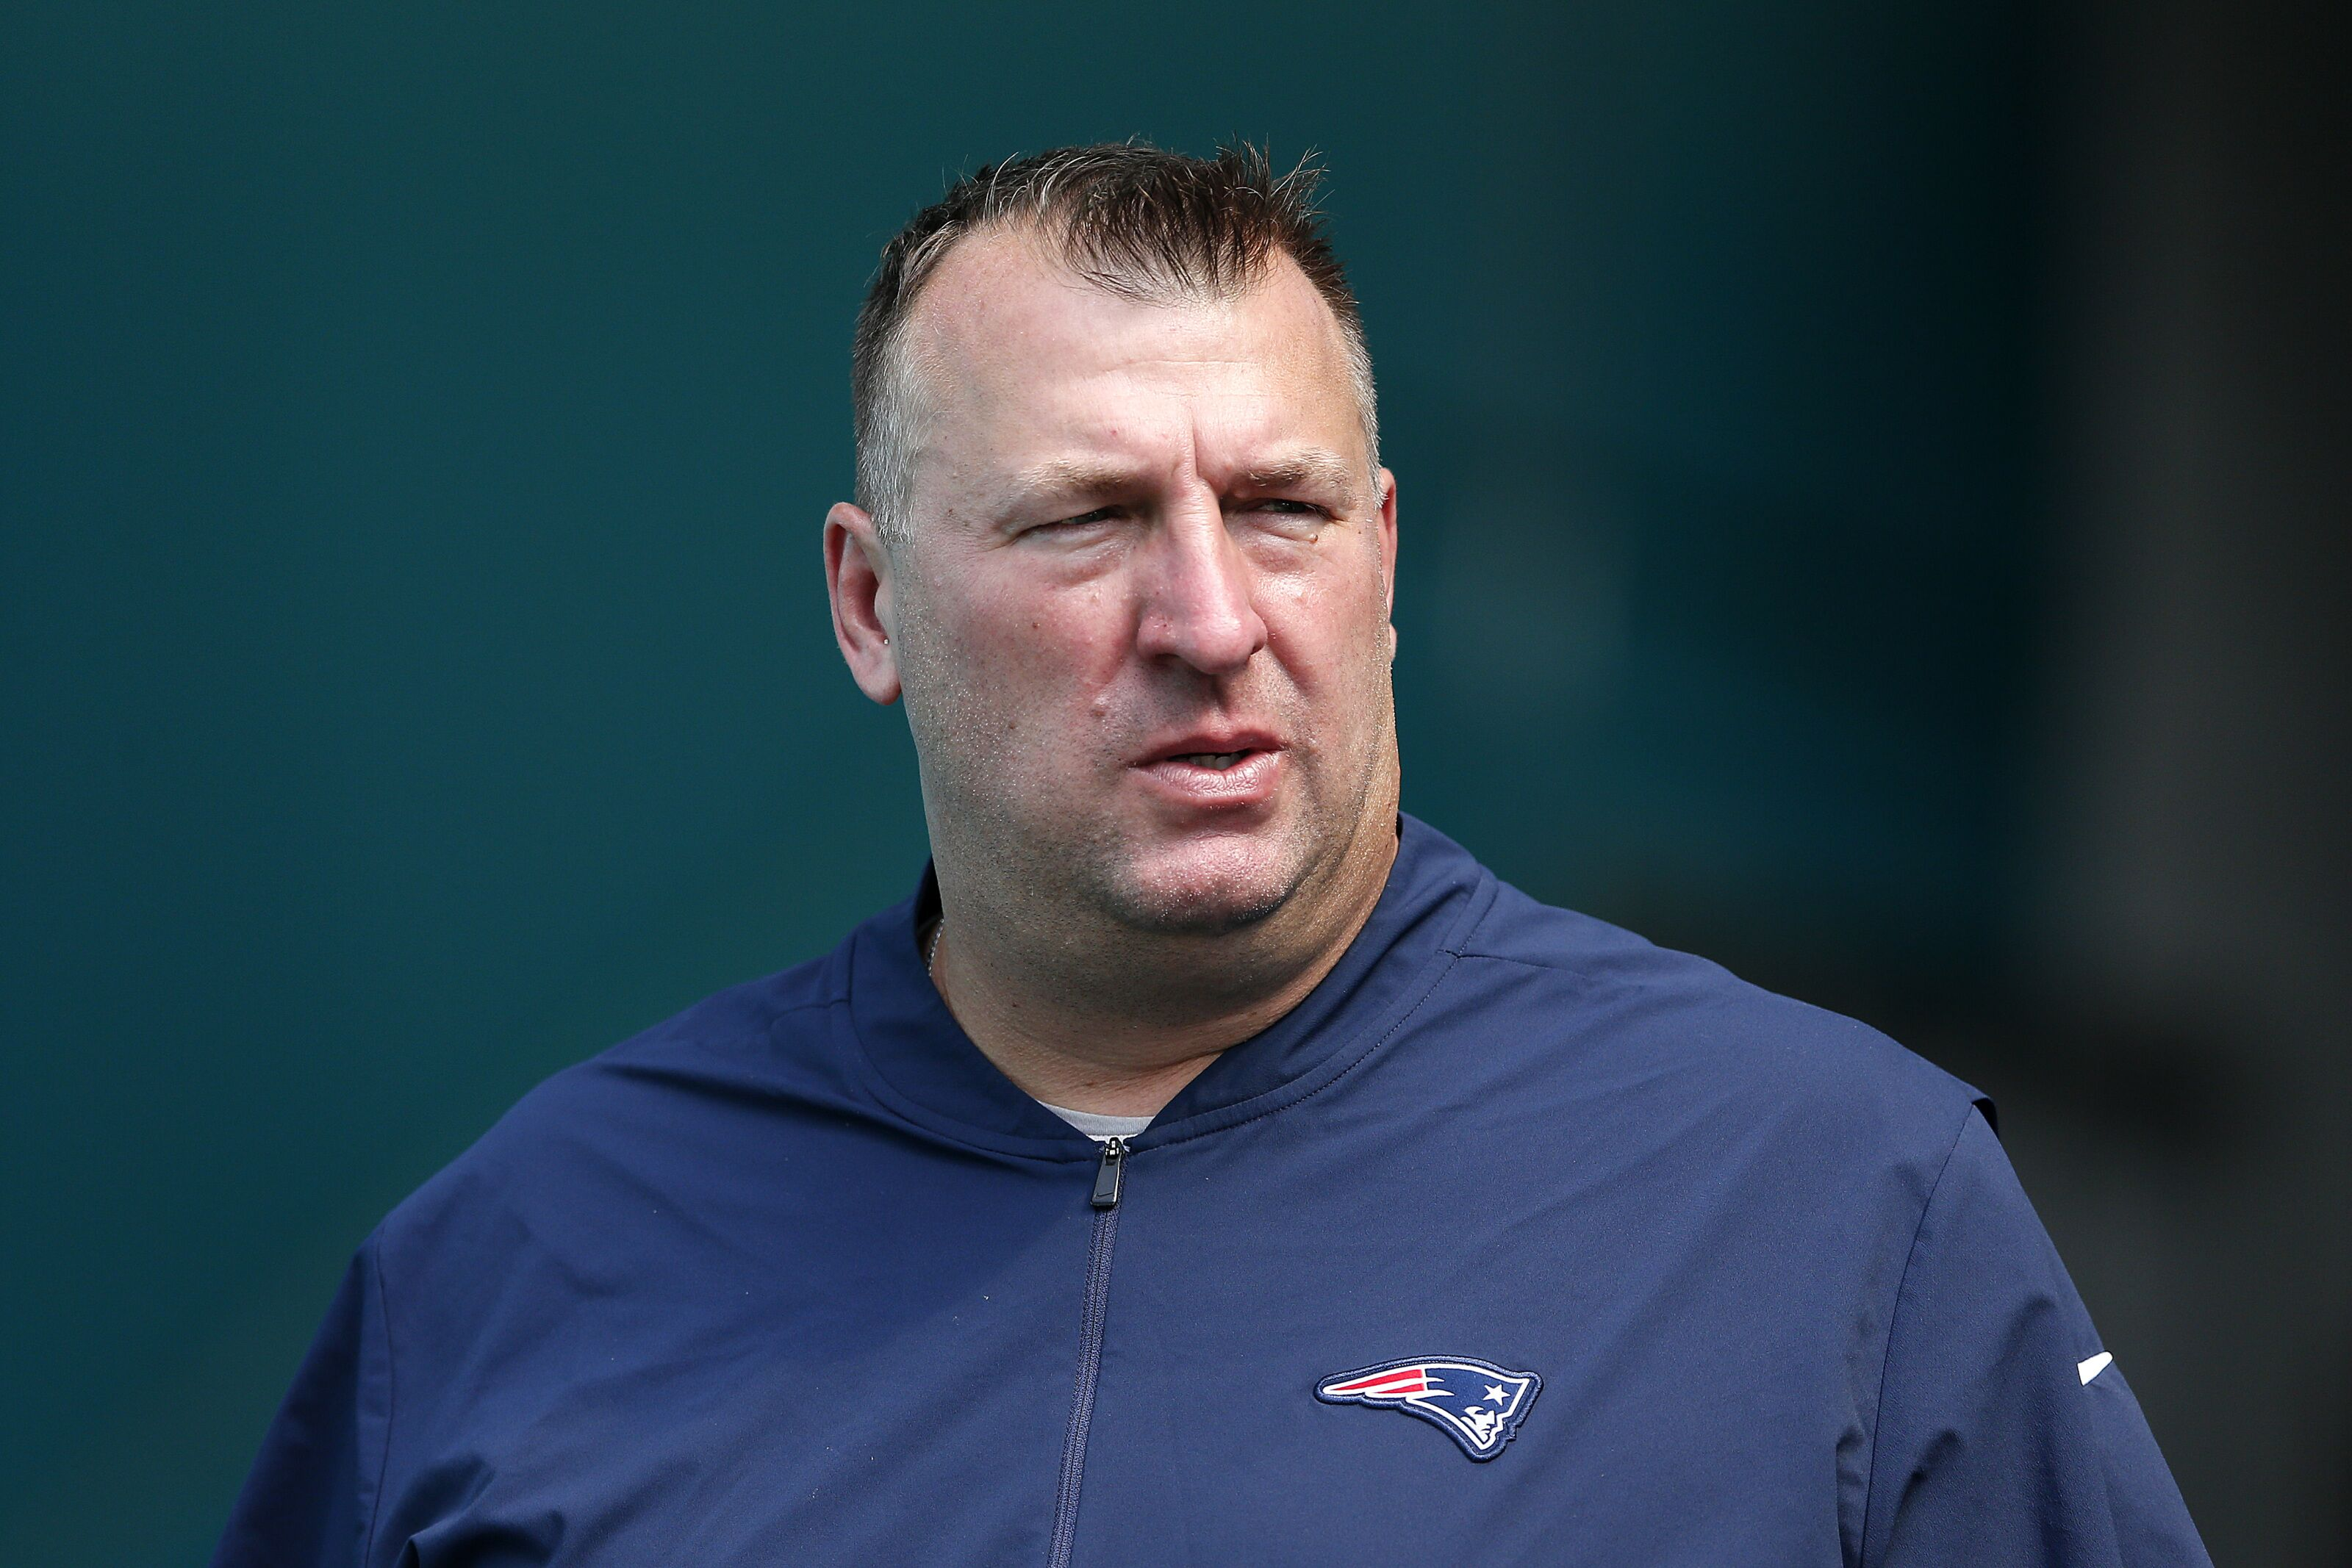 Bret Bielema is the best option at this point for Michigan State football